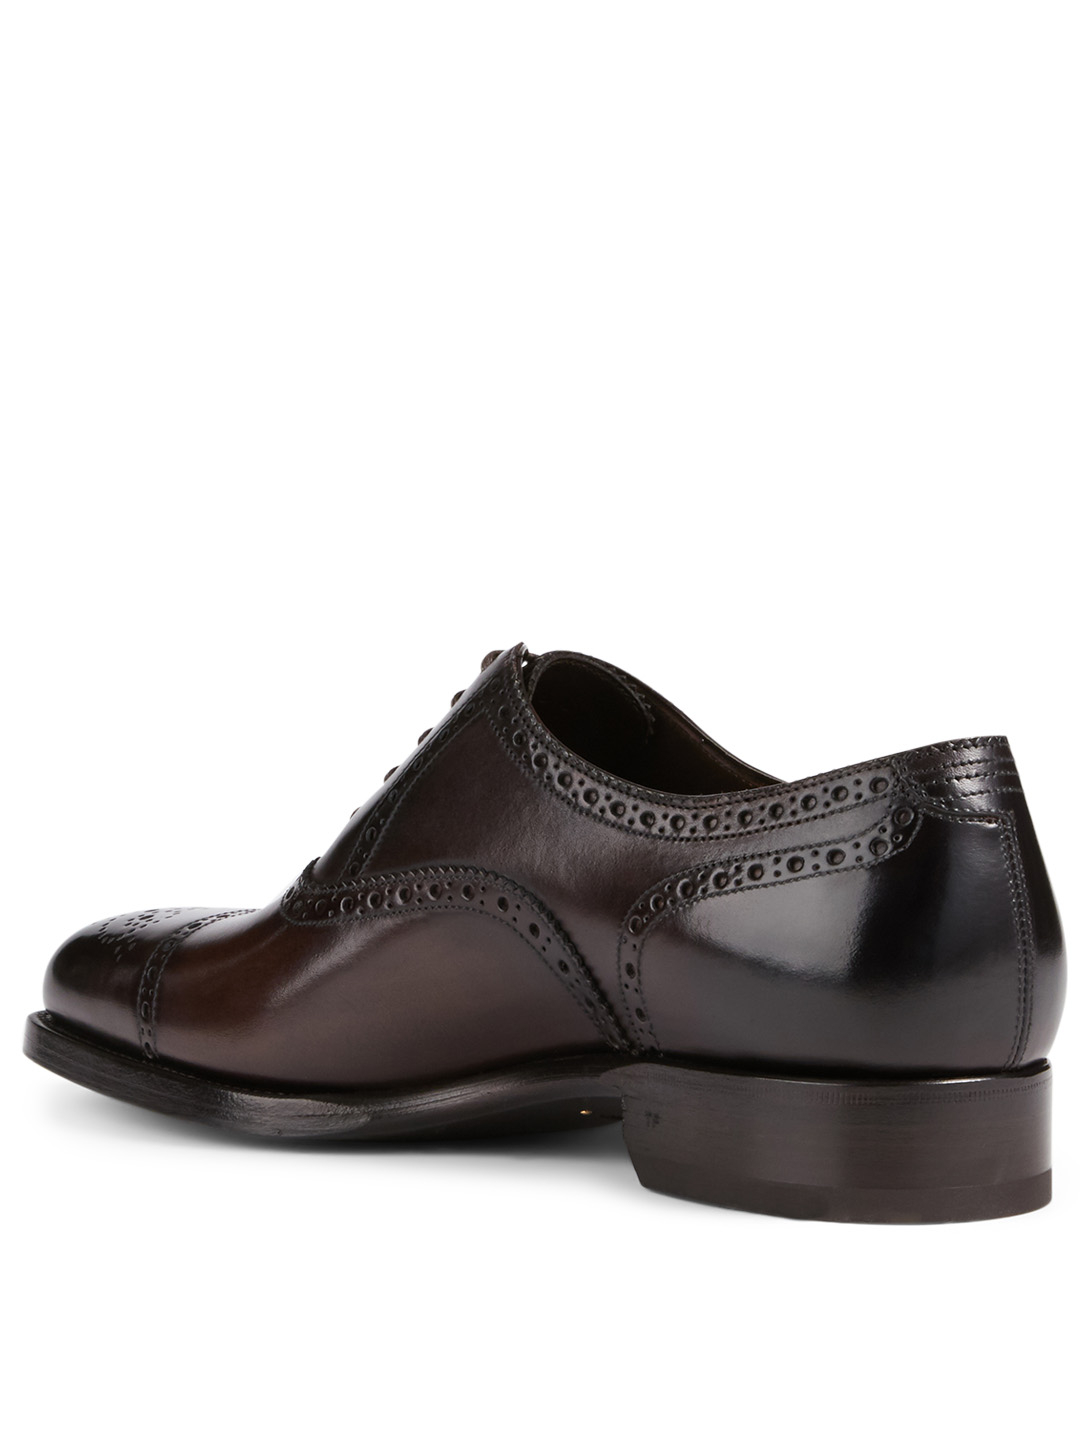 TOM FORD Gianni Leather Lace-Up Dress Shoes Men's Brown